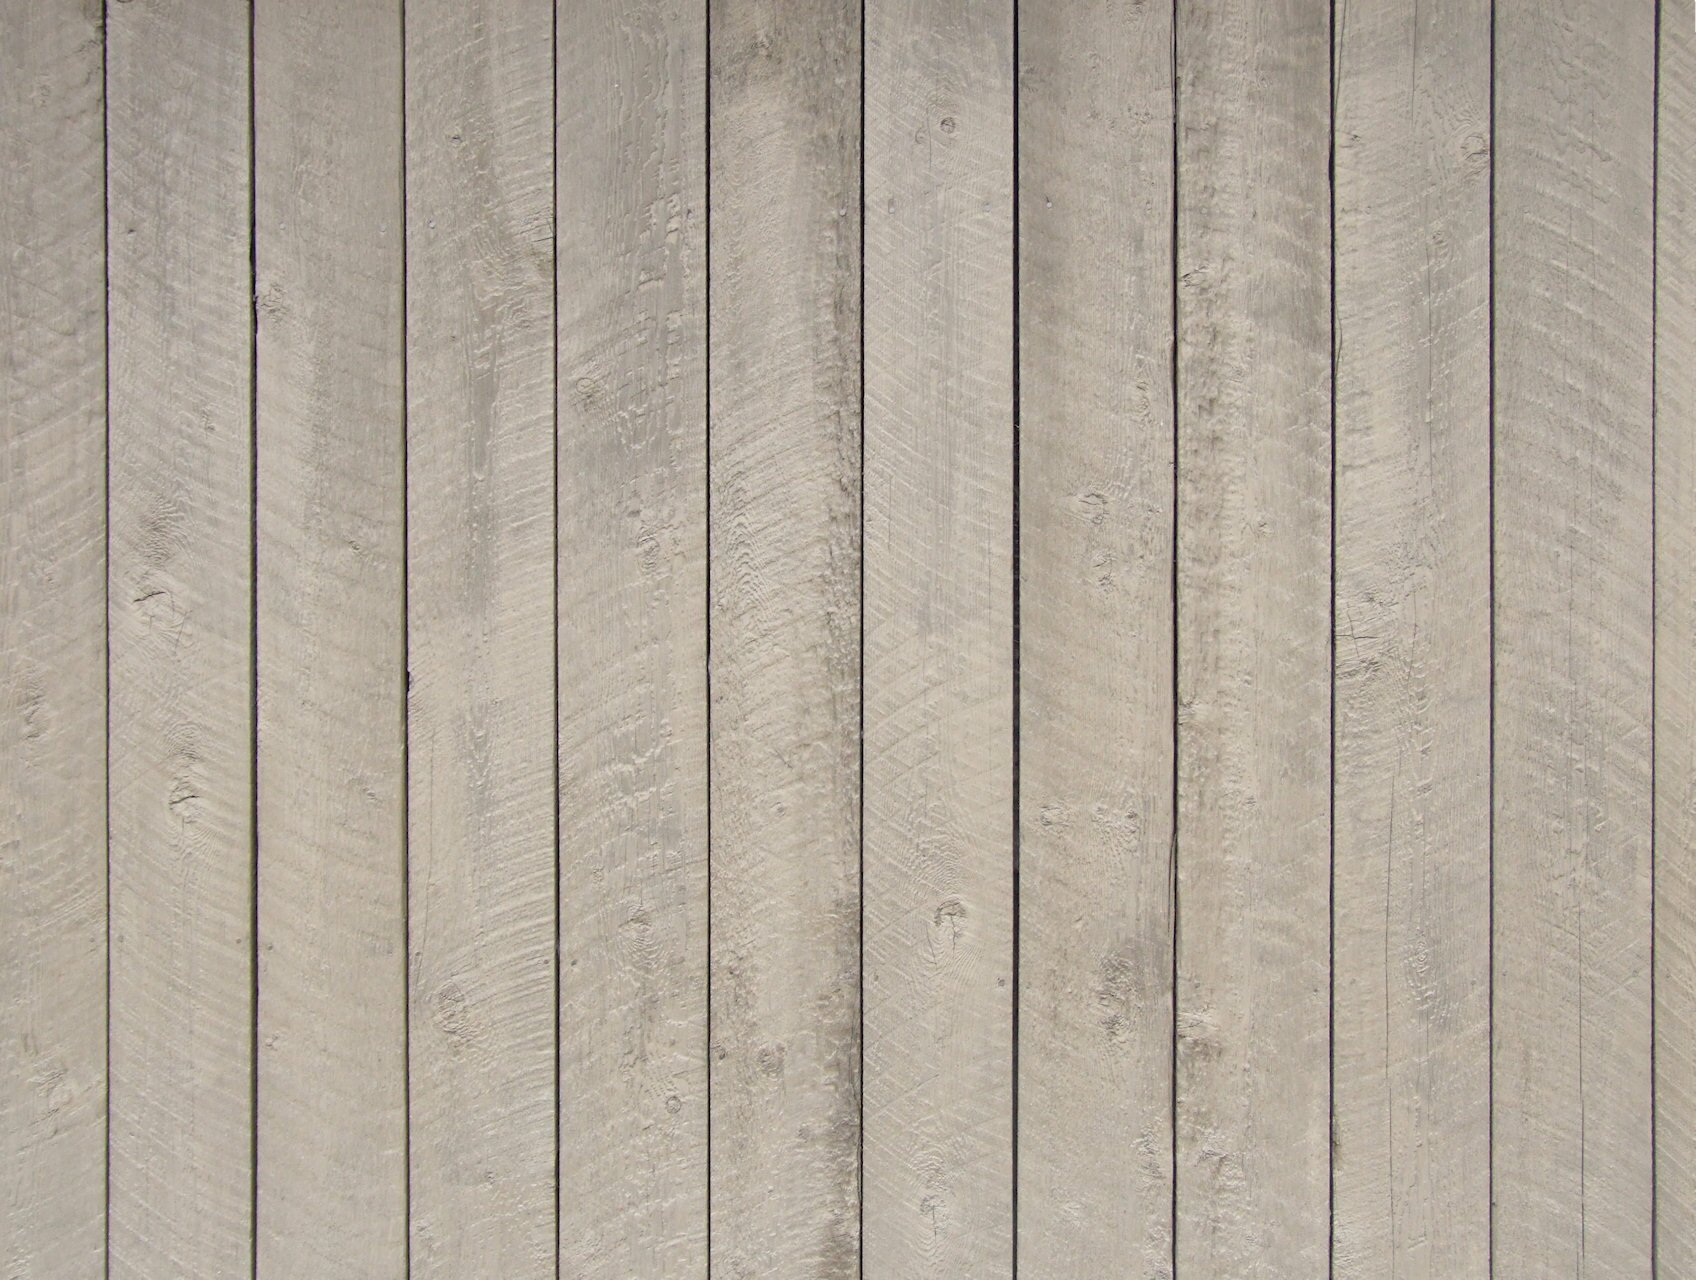 Techcredo wood wall texture 0008 for Wood wallpaper for walls